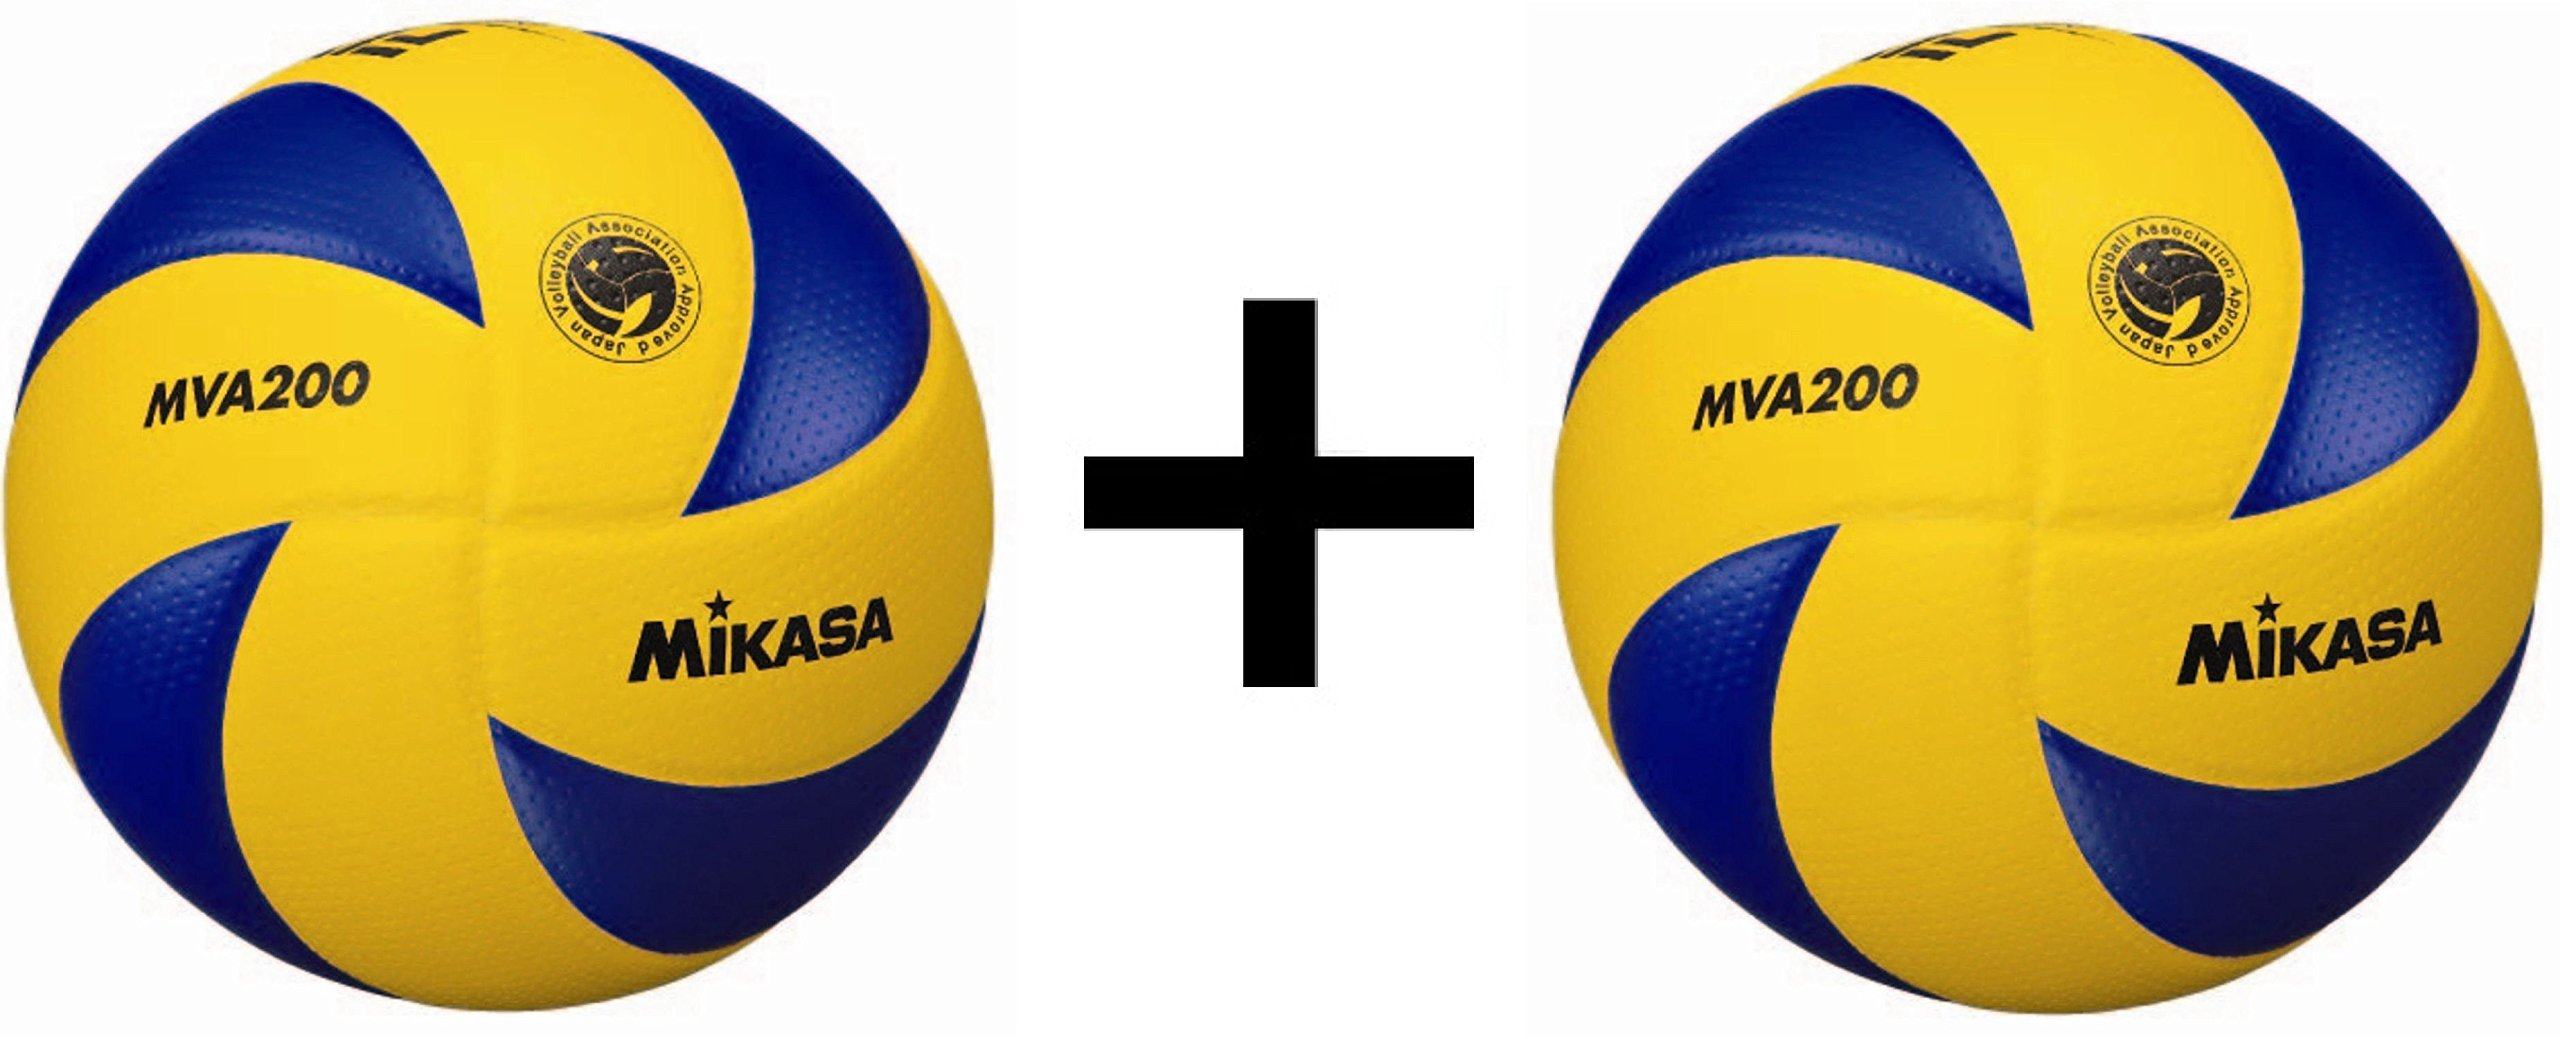 Mikasa FIVB Volleyball Official 2016 Olympic Game Ball Dimpled Surface (2-Pack) by Mikasa Sports